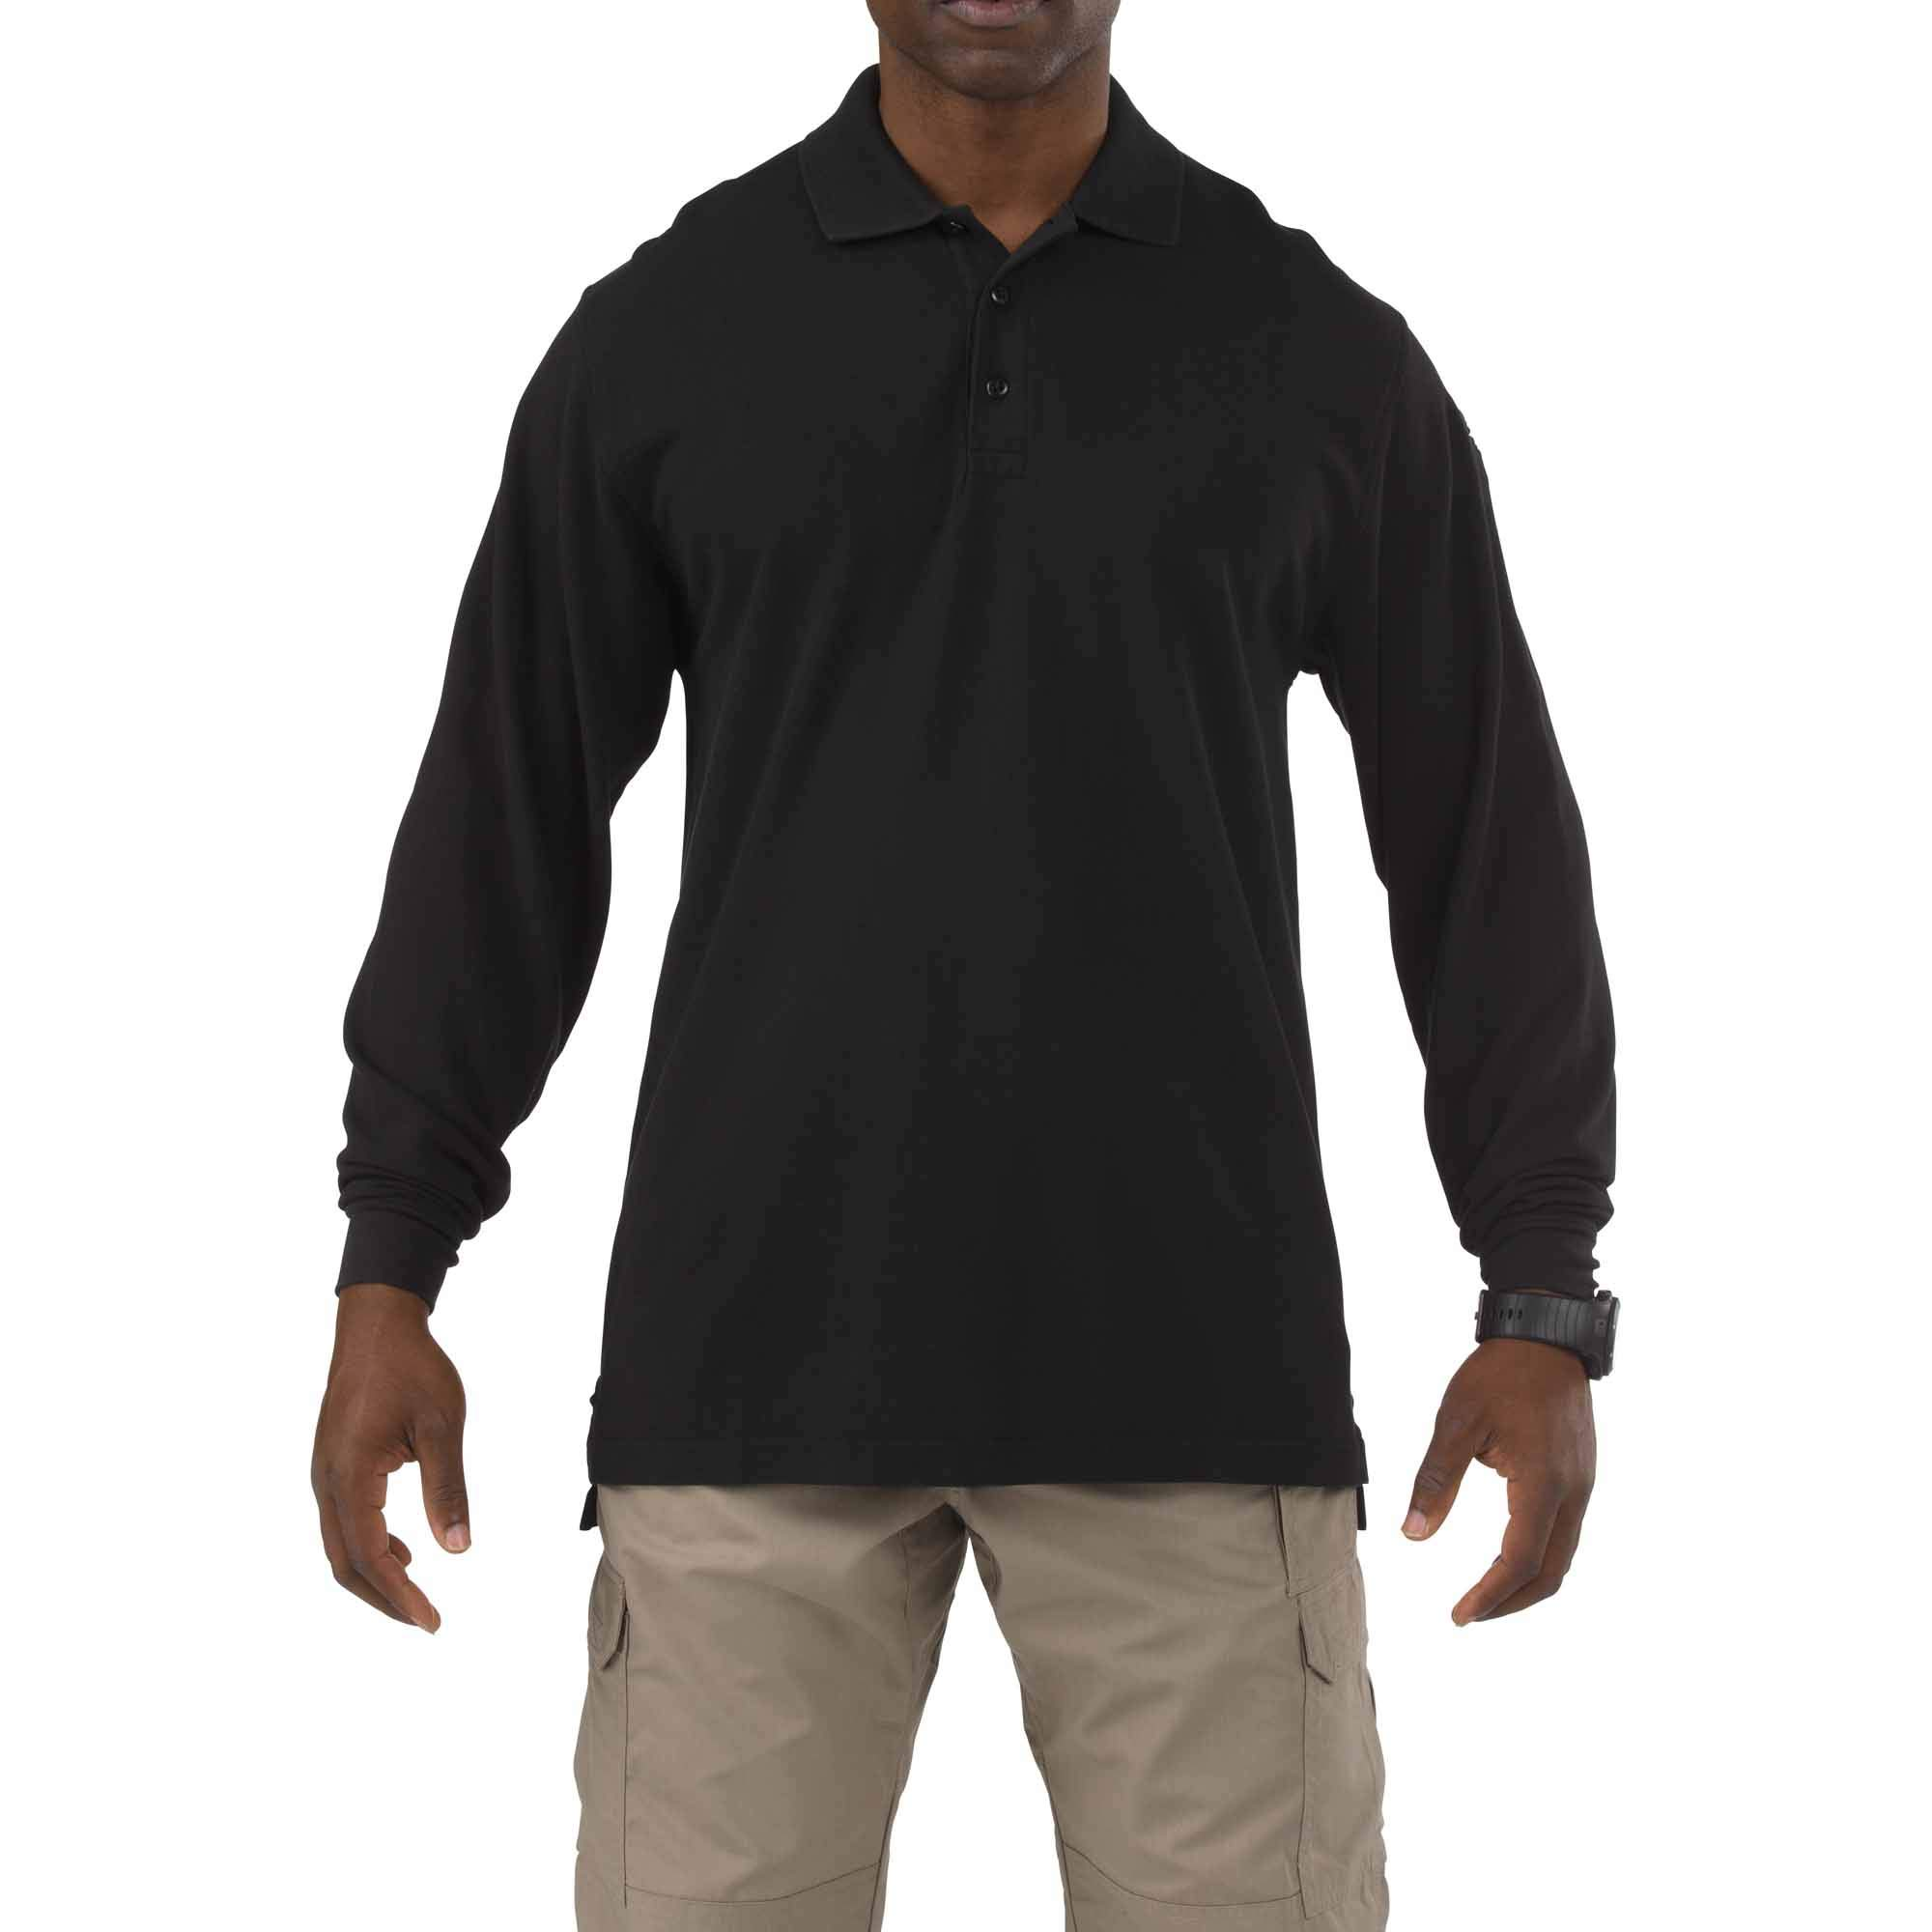 5.11 Tactical Long Sleeve Tall Professional Polo Shirt, Black, X-Large by 5.11